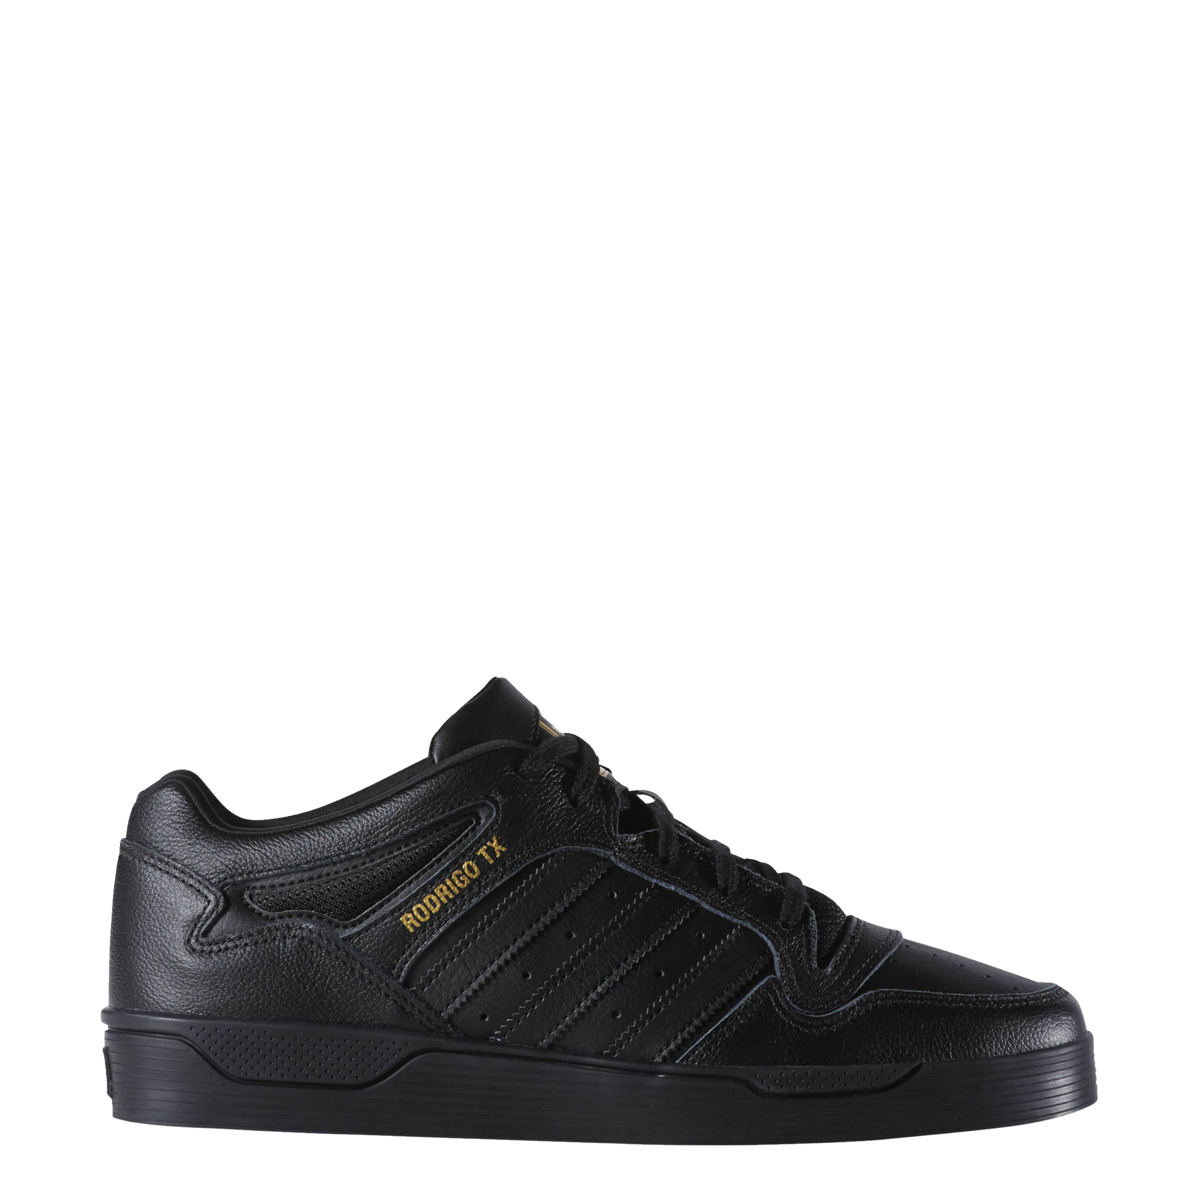 d0f325bbf81da Buty Adidas Skateboarding ADI-EASE Premiere Core Black / Running White |  Shoes \ Adidas Skateboarding SALE \ Sale 50% -70% \ Shoes Brands \ Adidas  Originals ...